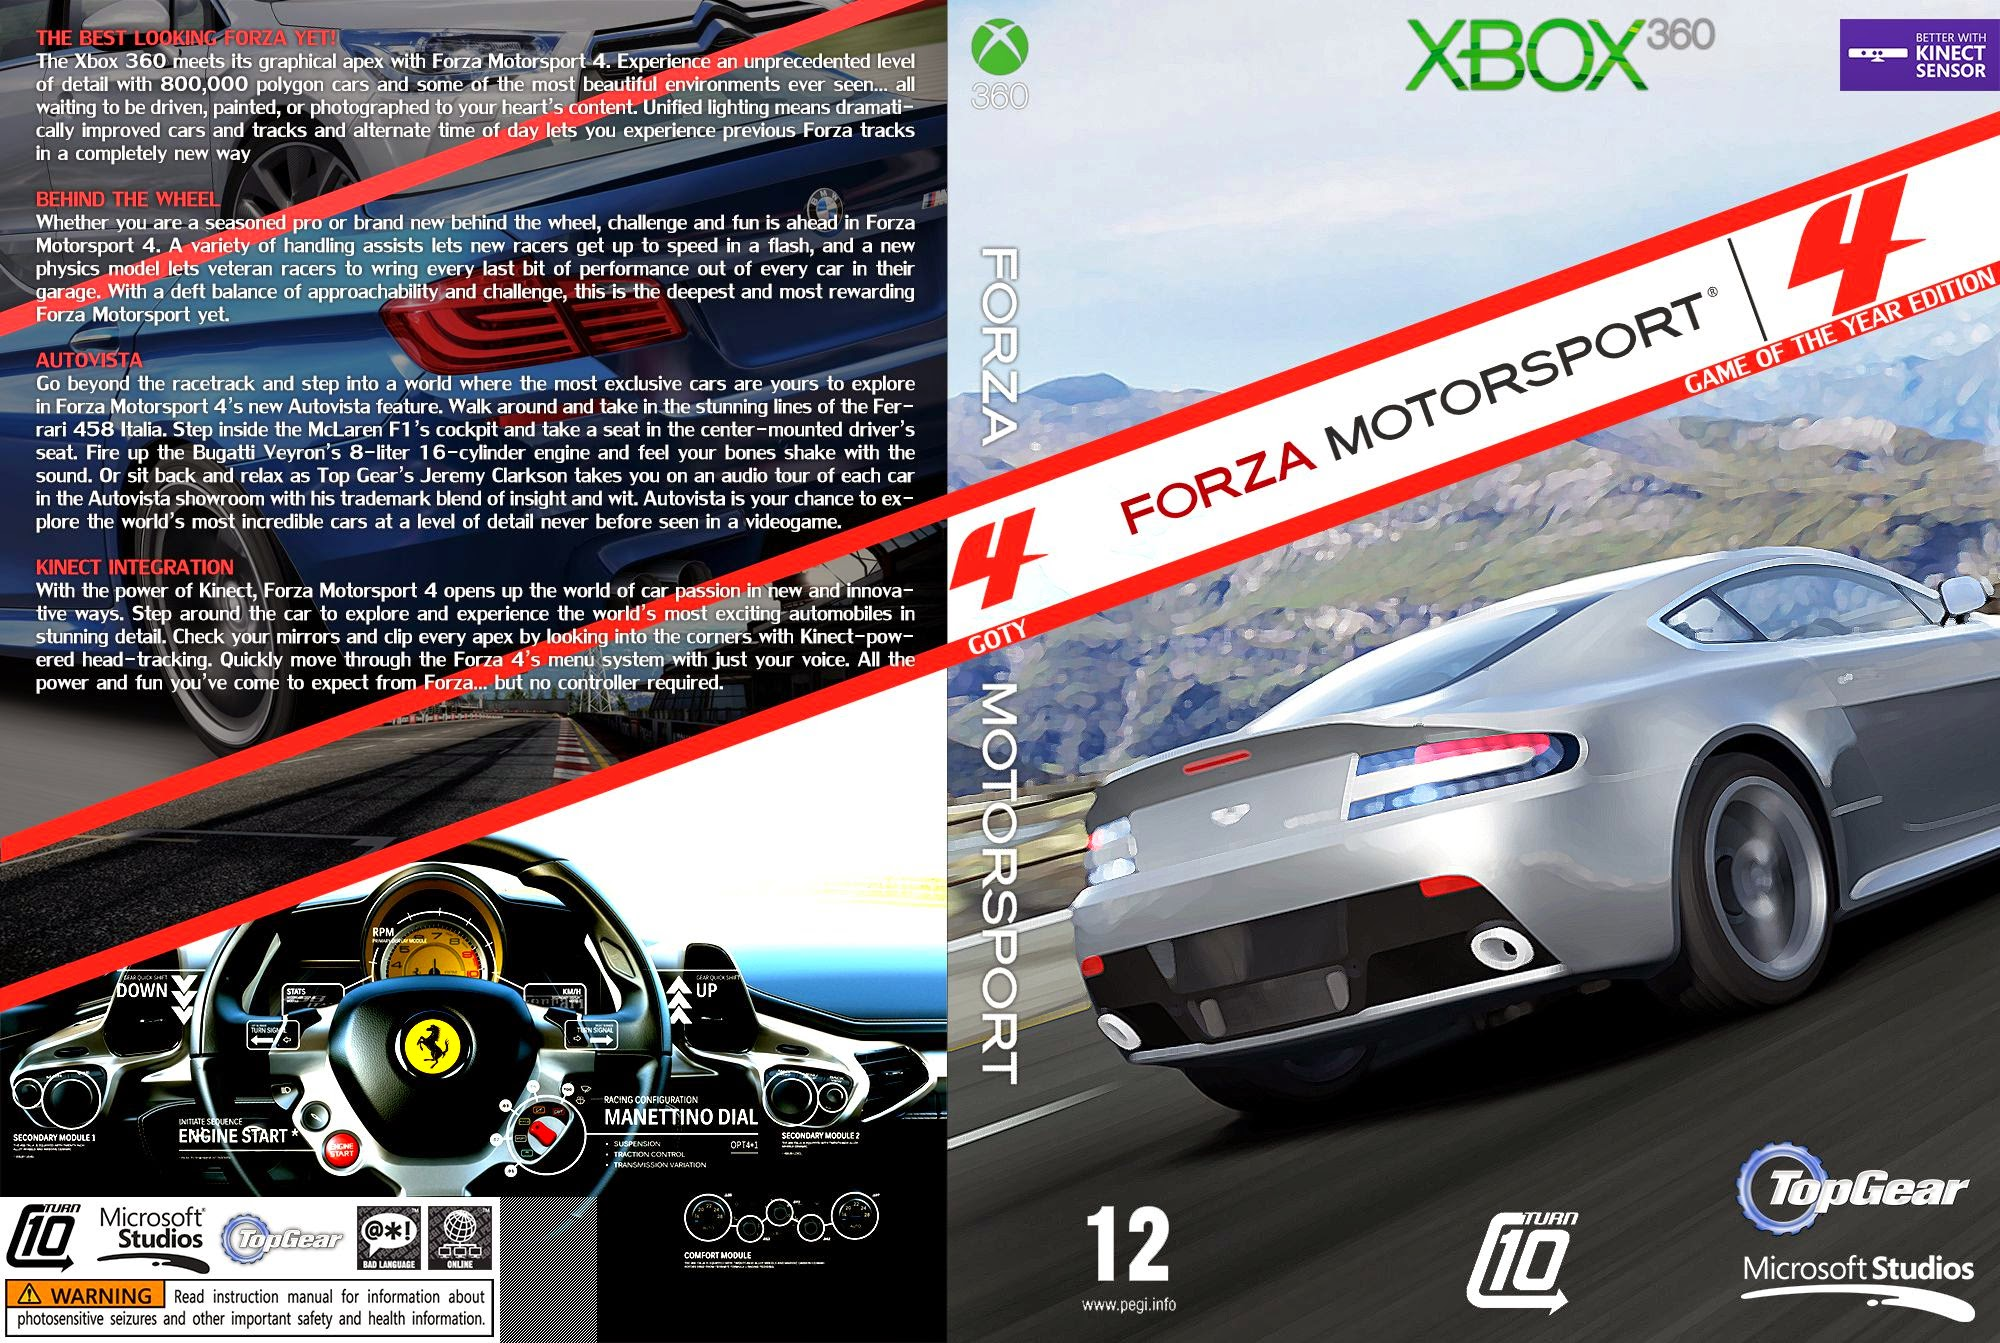 xbox 360 save game editor forza 3 cofile. Black Bedroom Furniture Sets. Home Design Ideas